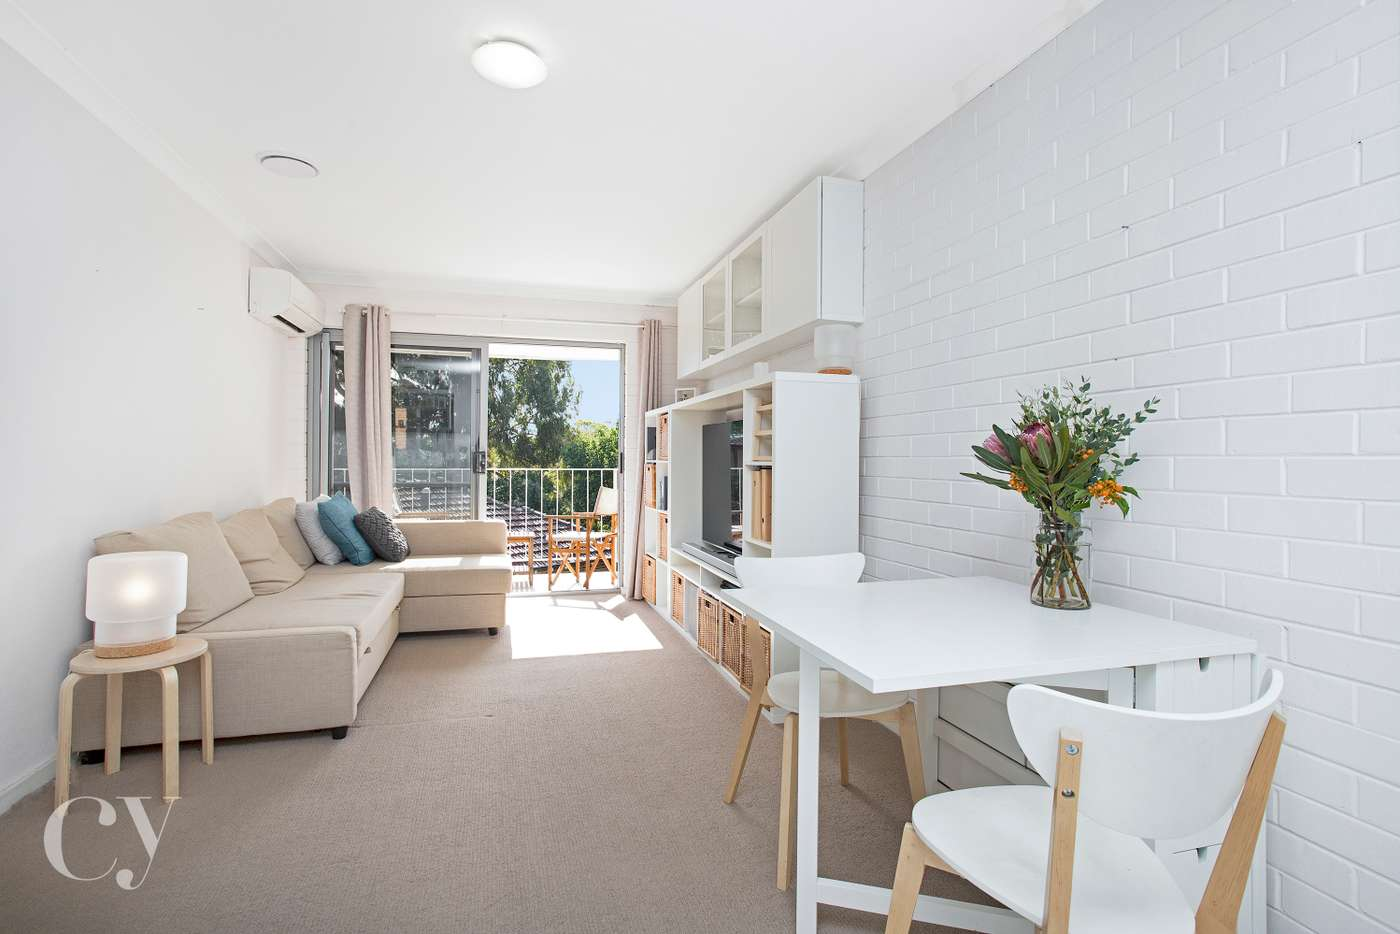 Main view of Homely apartment listing, 11/3 Cullen Street, Shenton Park WA 6008